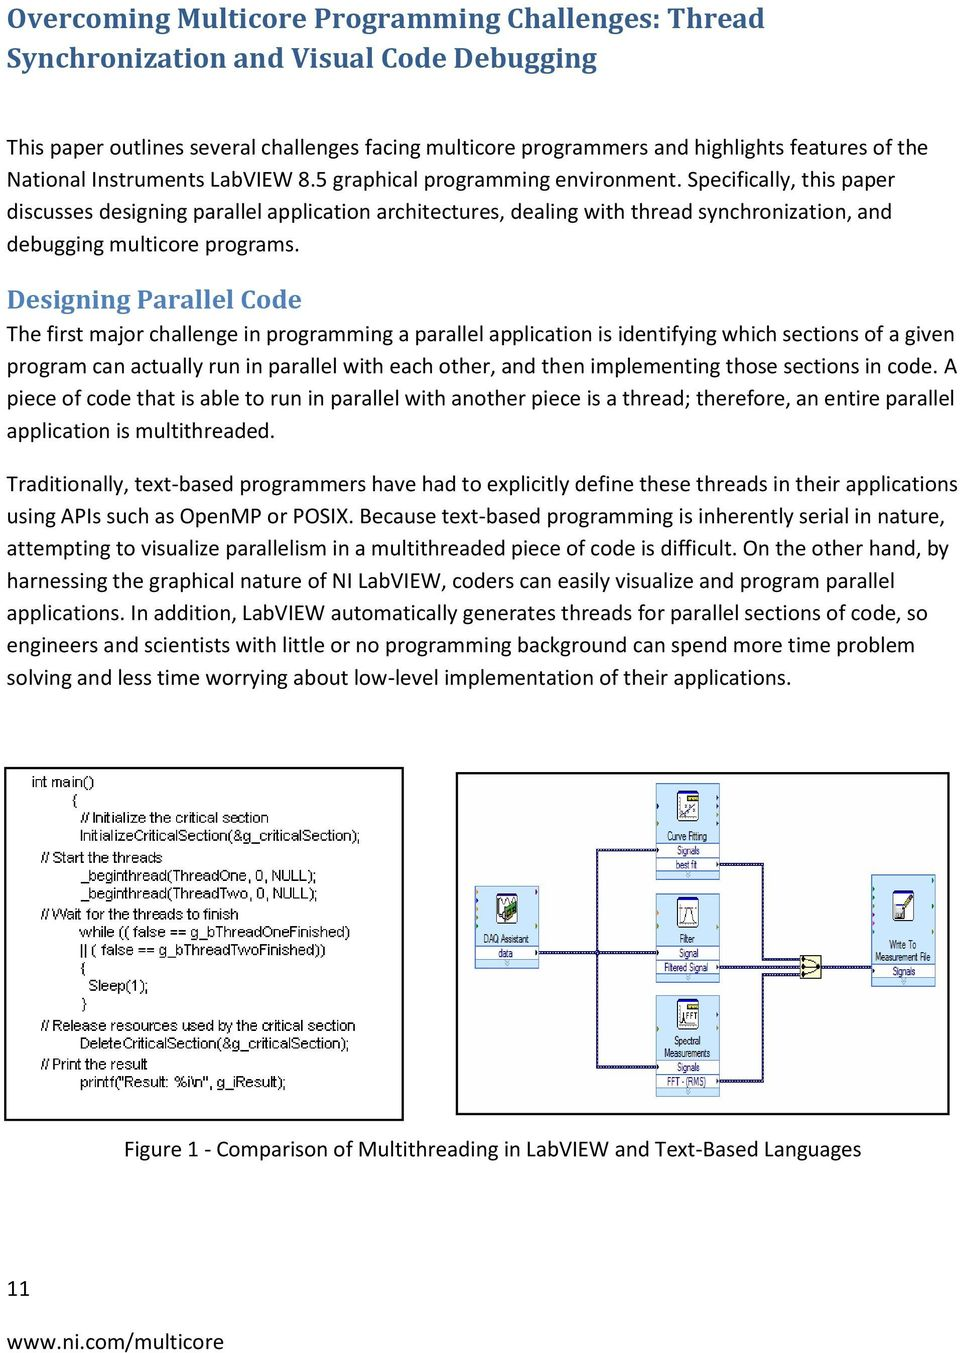 Specifically, this paper discusses designing parallel application architectures, dealing with thread synchronization, and debugging multicore programs.